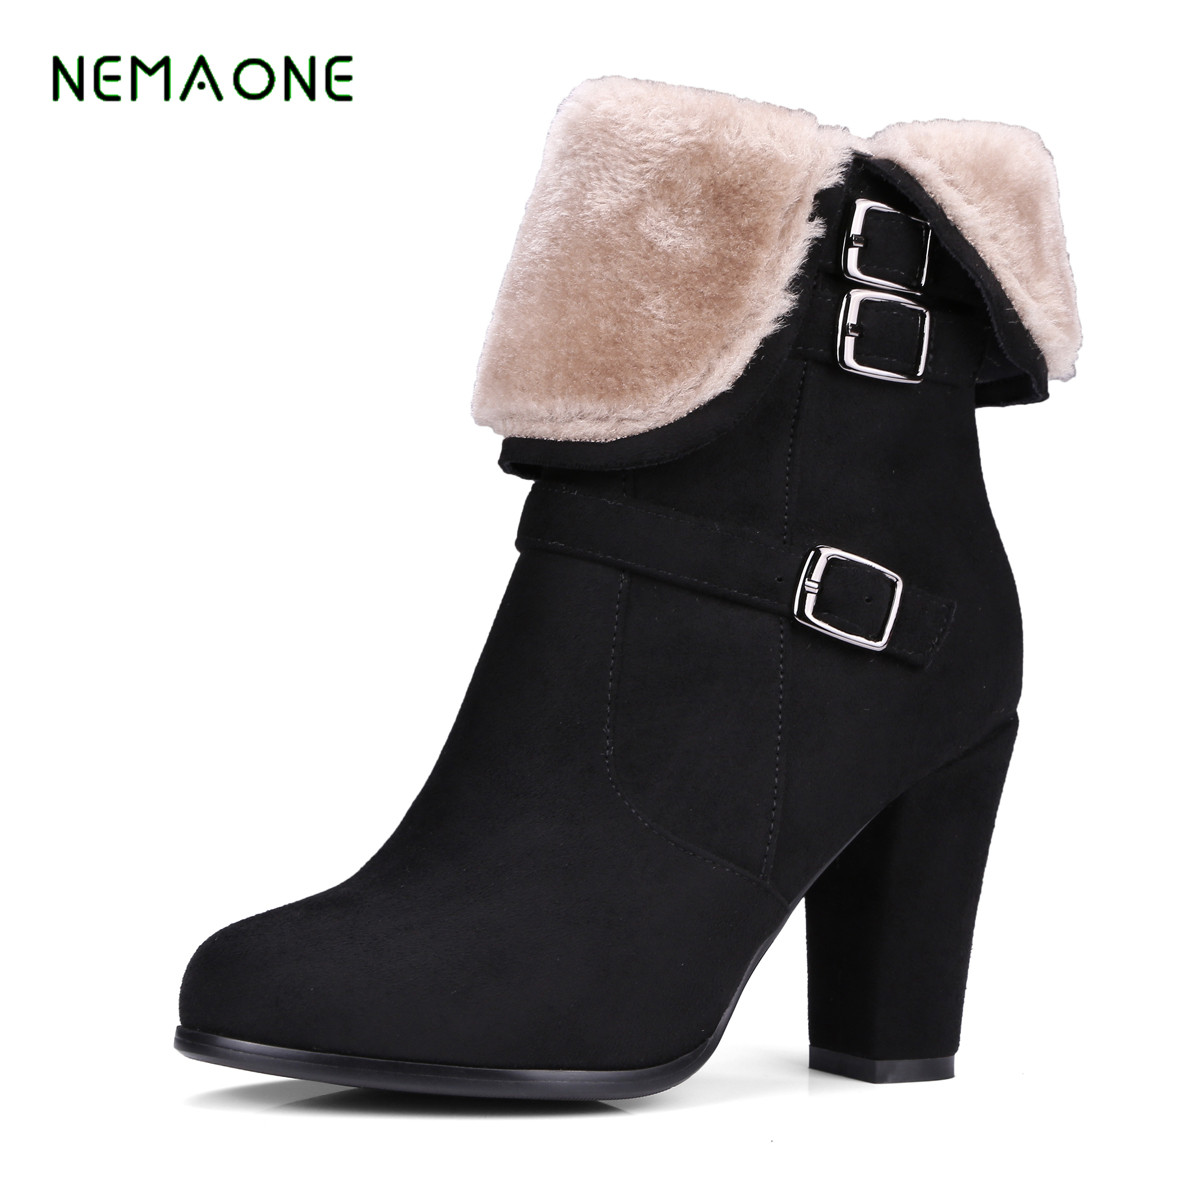 NEMAONE Female Winter Boots Women Shoes Buckles Warm Black Gray Short Ankle Snow Boots High Heels Lady Thick Boot Plus Size 2017 2017 cow suede genuine leather female boots all season winter short plush to keep warm ankle boot solid snow boot bota feminina